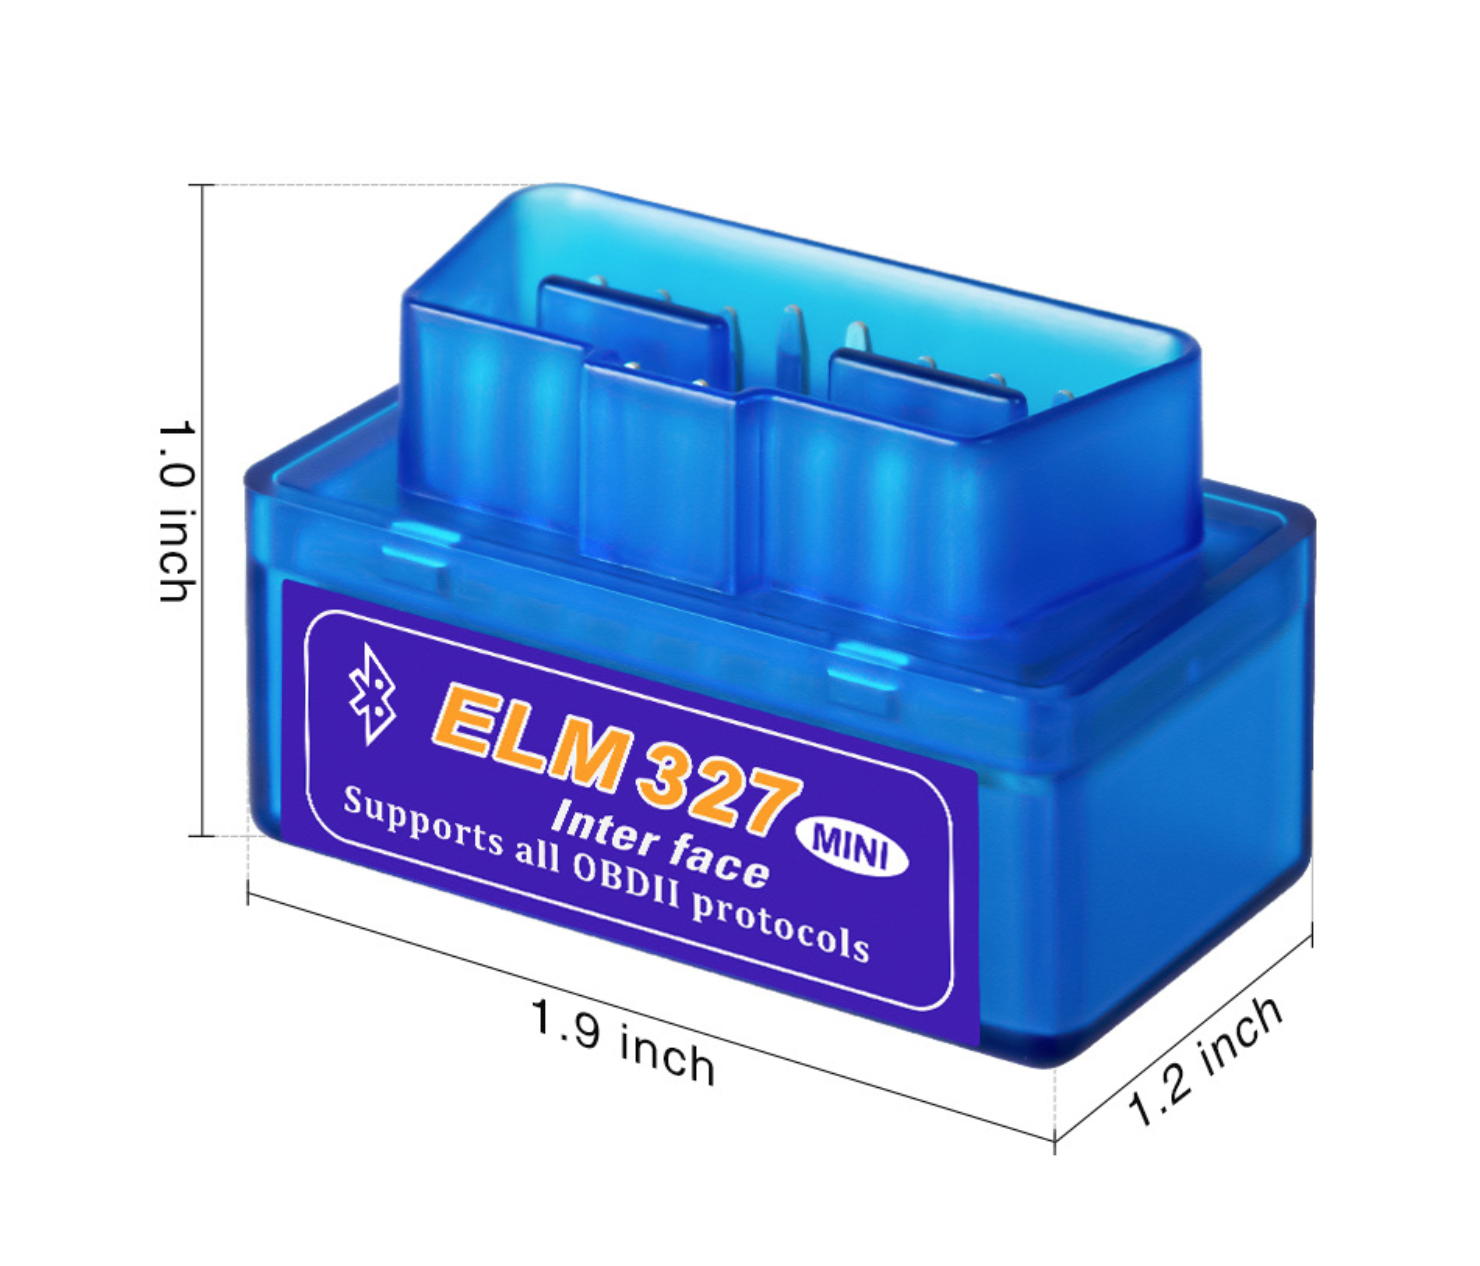 MINI ELM327 Bluetooth OBD2 Diagnostic Adapter